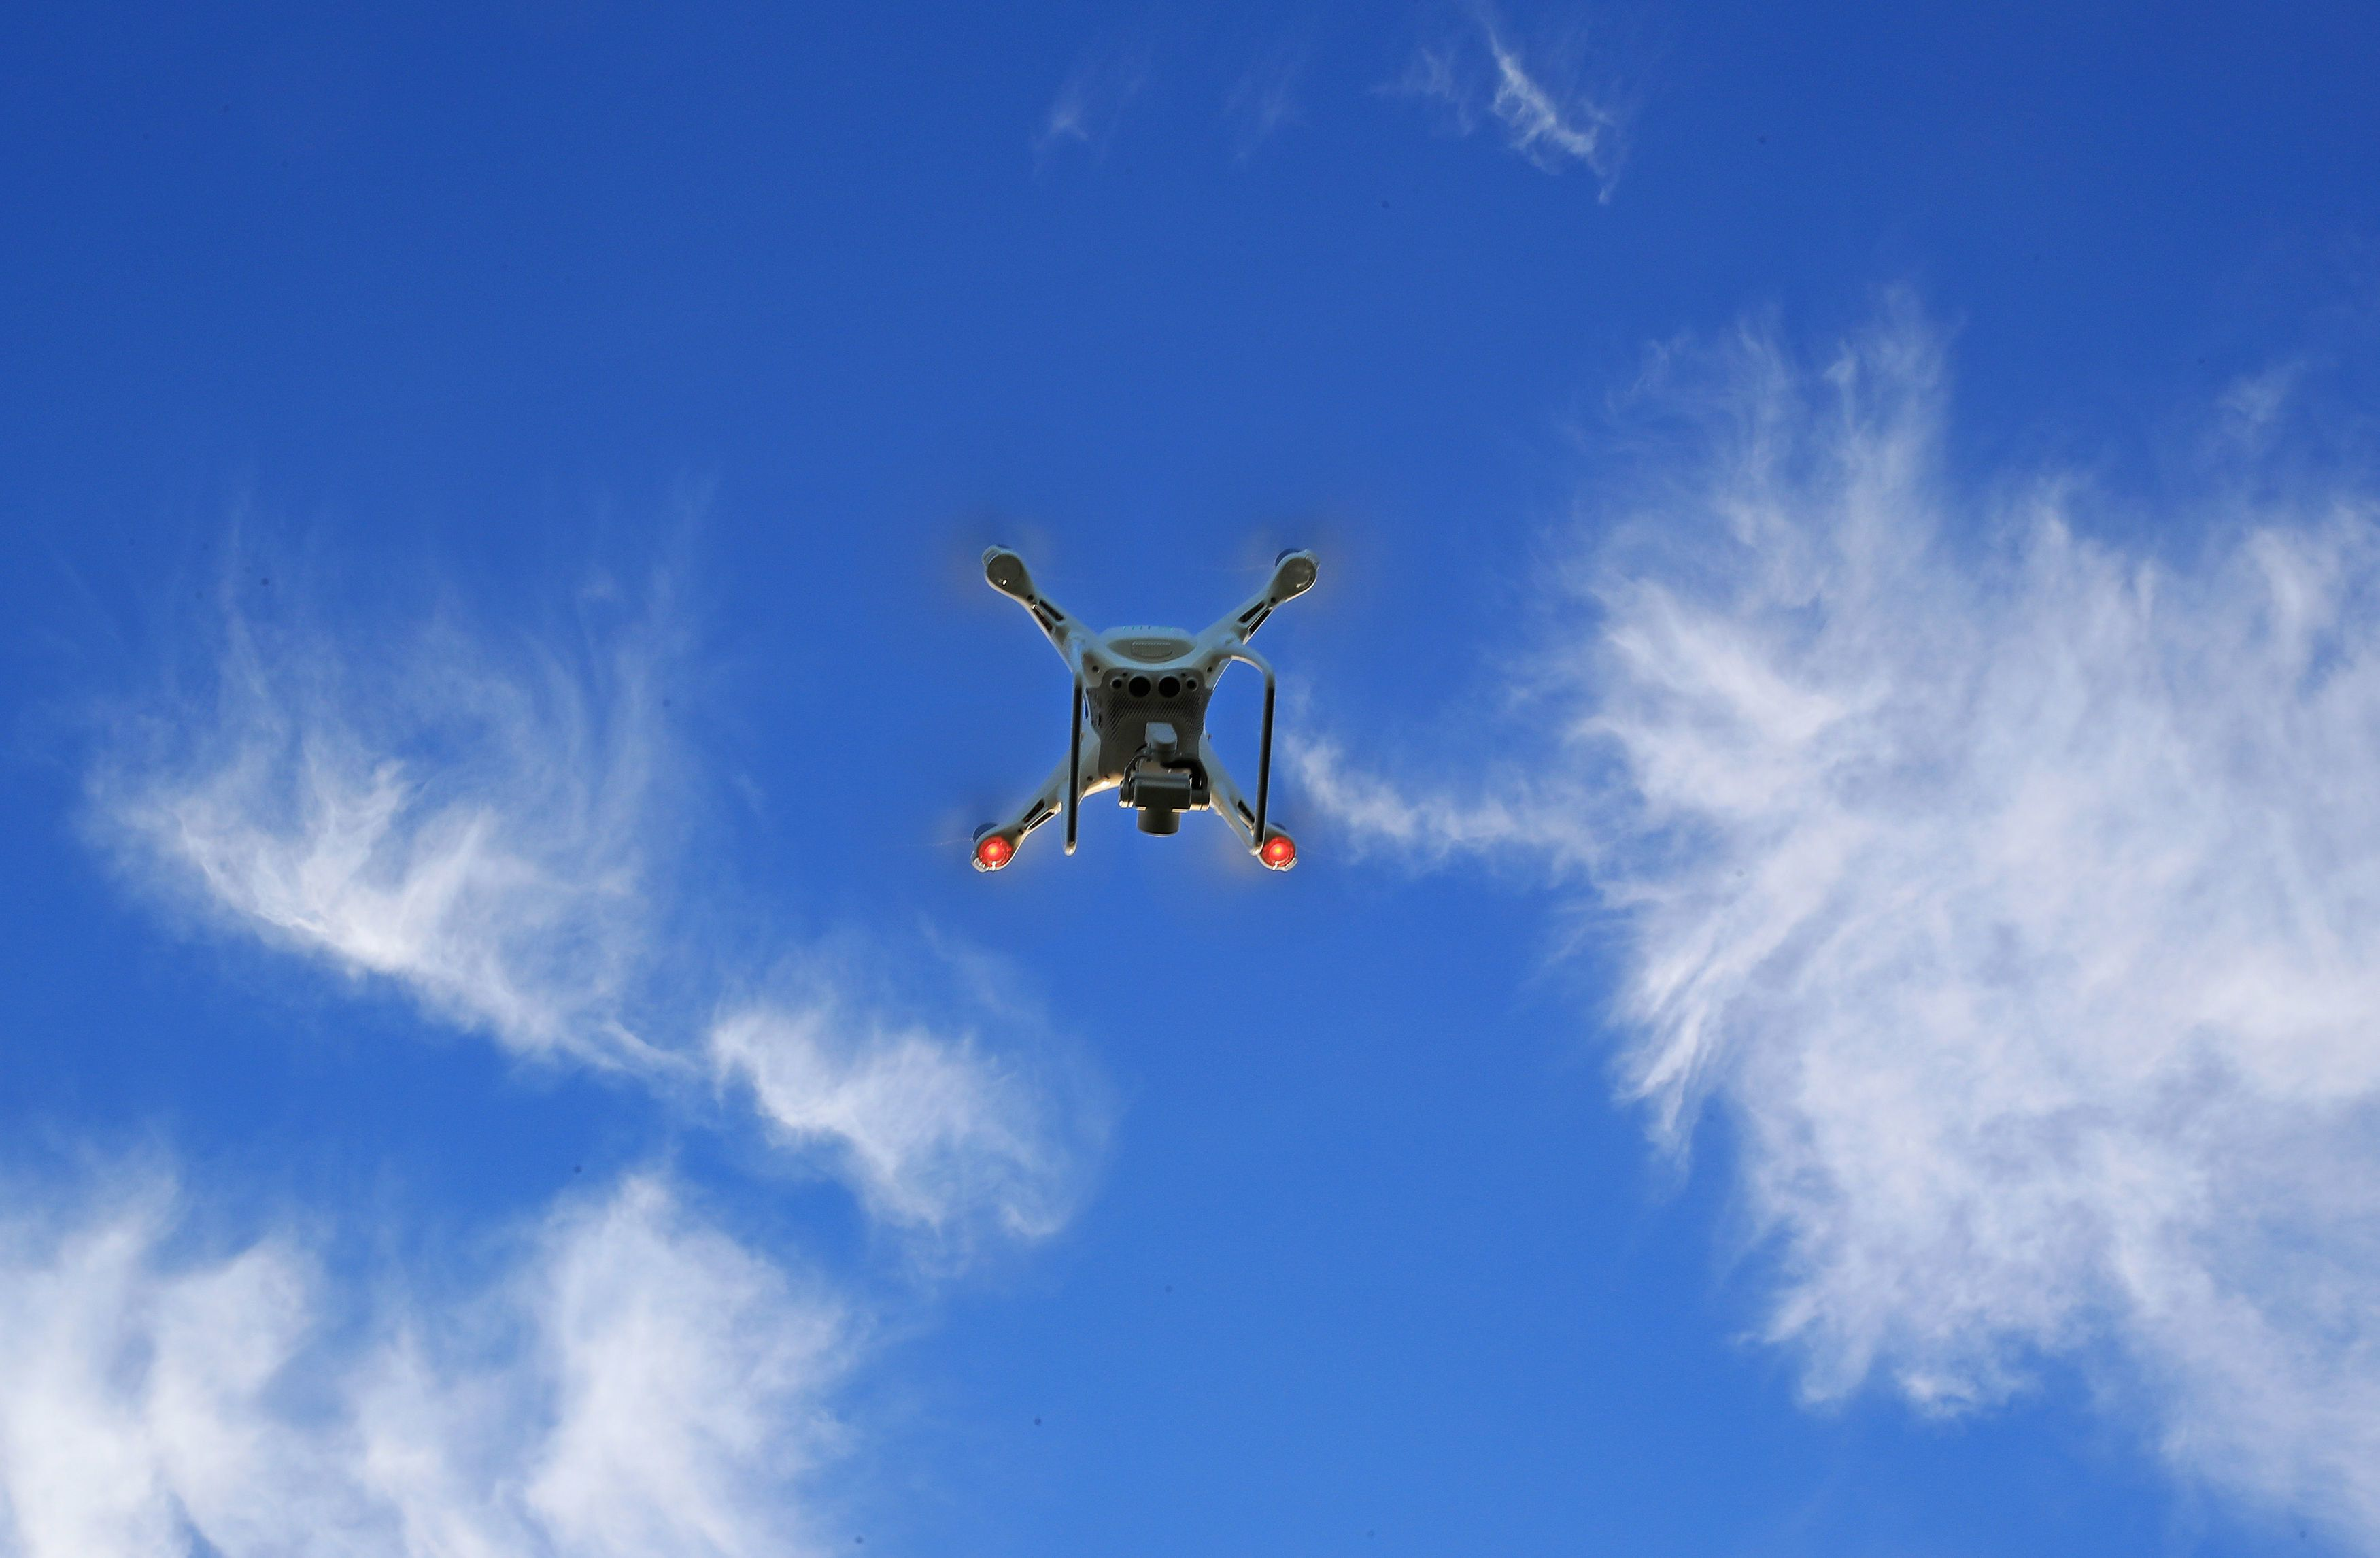 Drone Flown Towards Light Aircraft 'In An Attempt To Cause